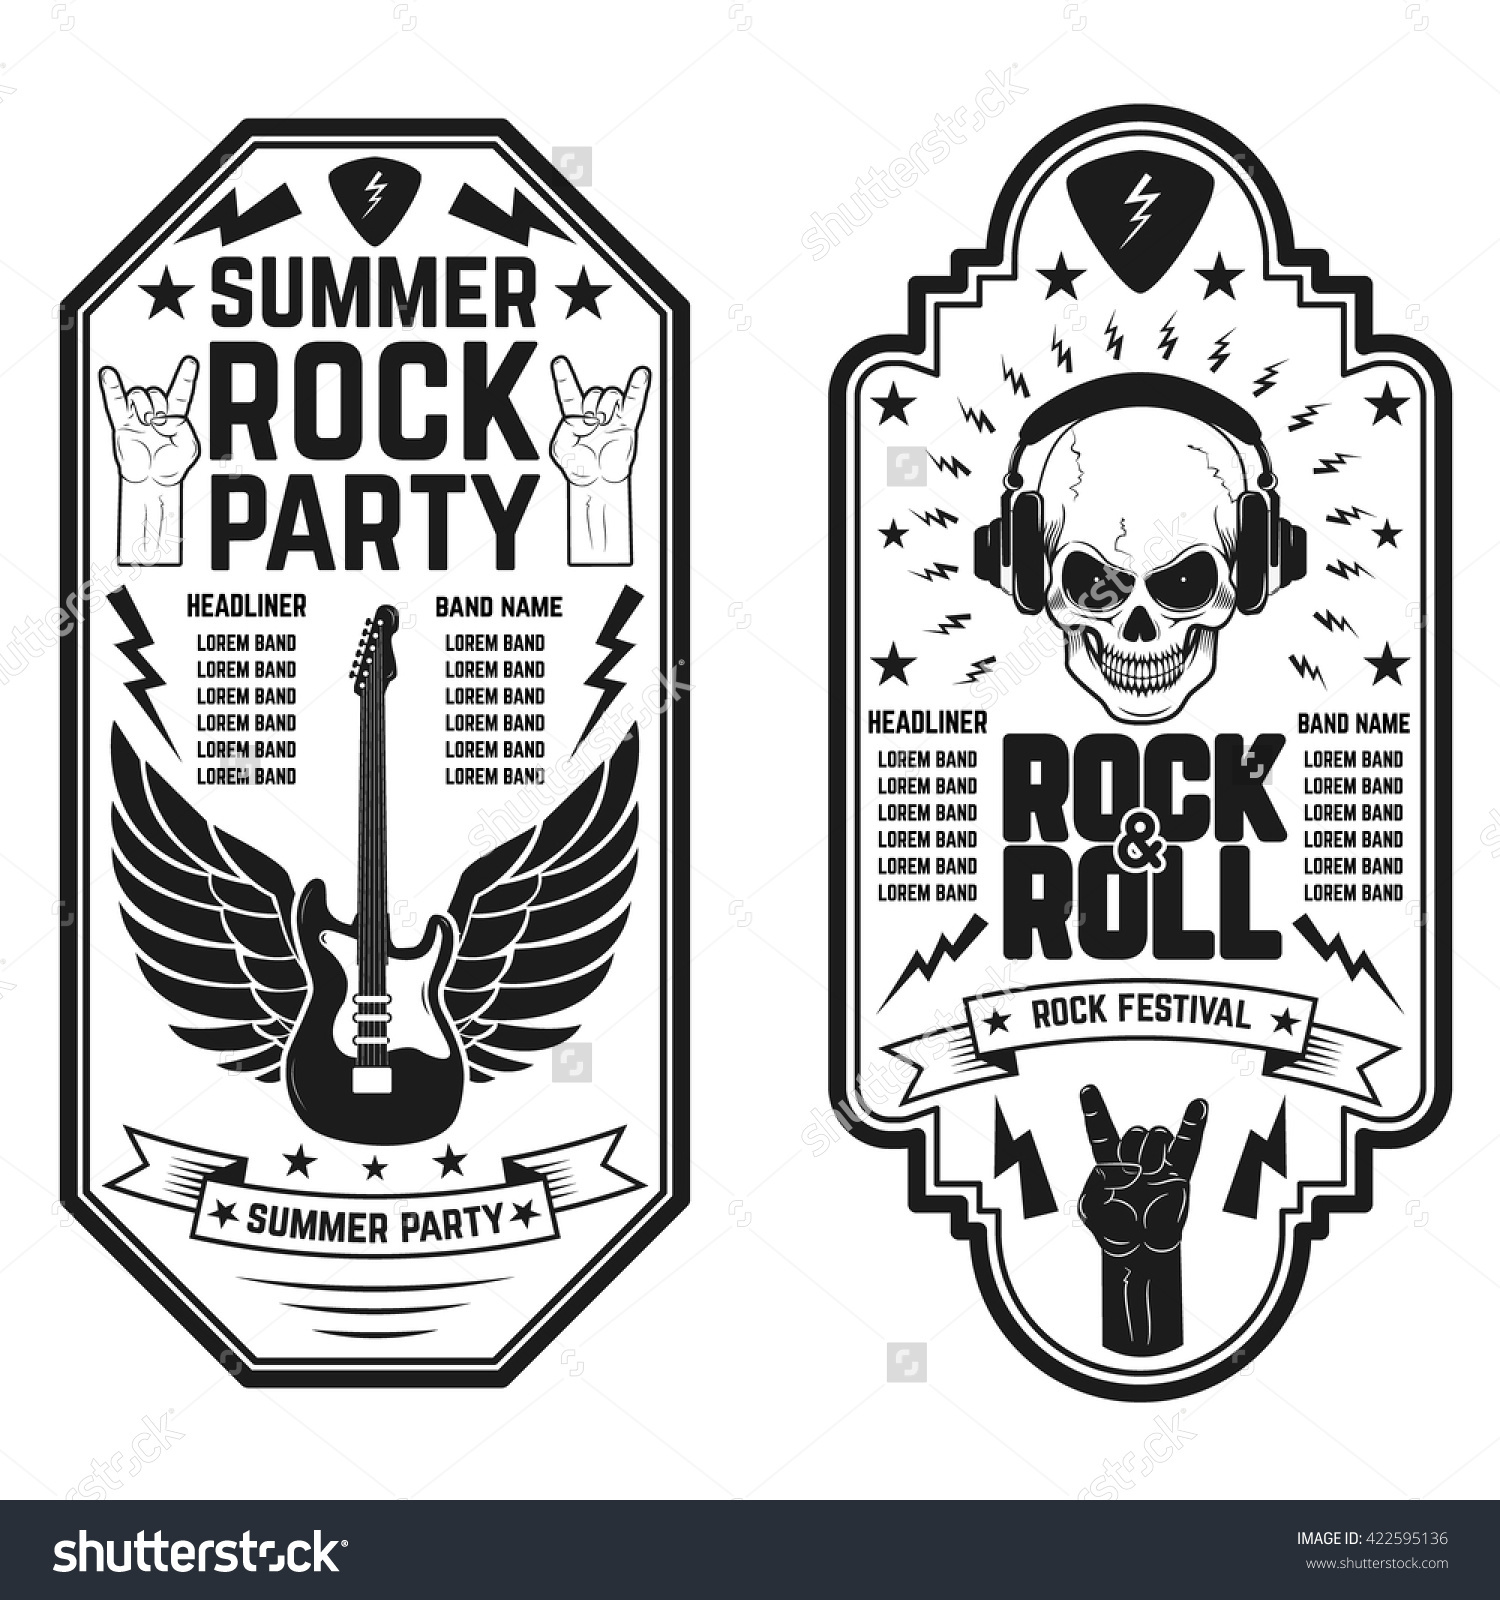 Rock And Roll Concert Flyer Templates. Summer Rock And Roll Party.